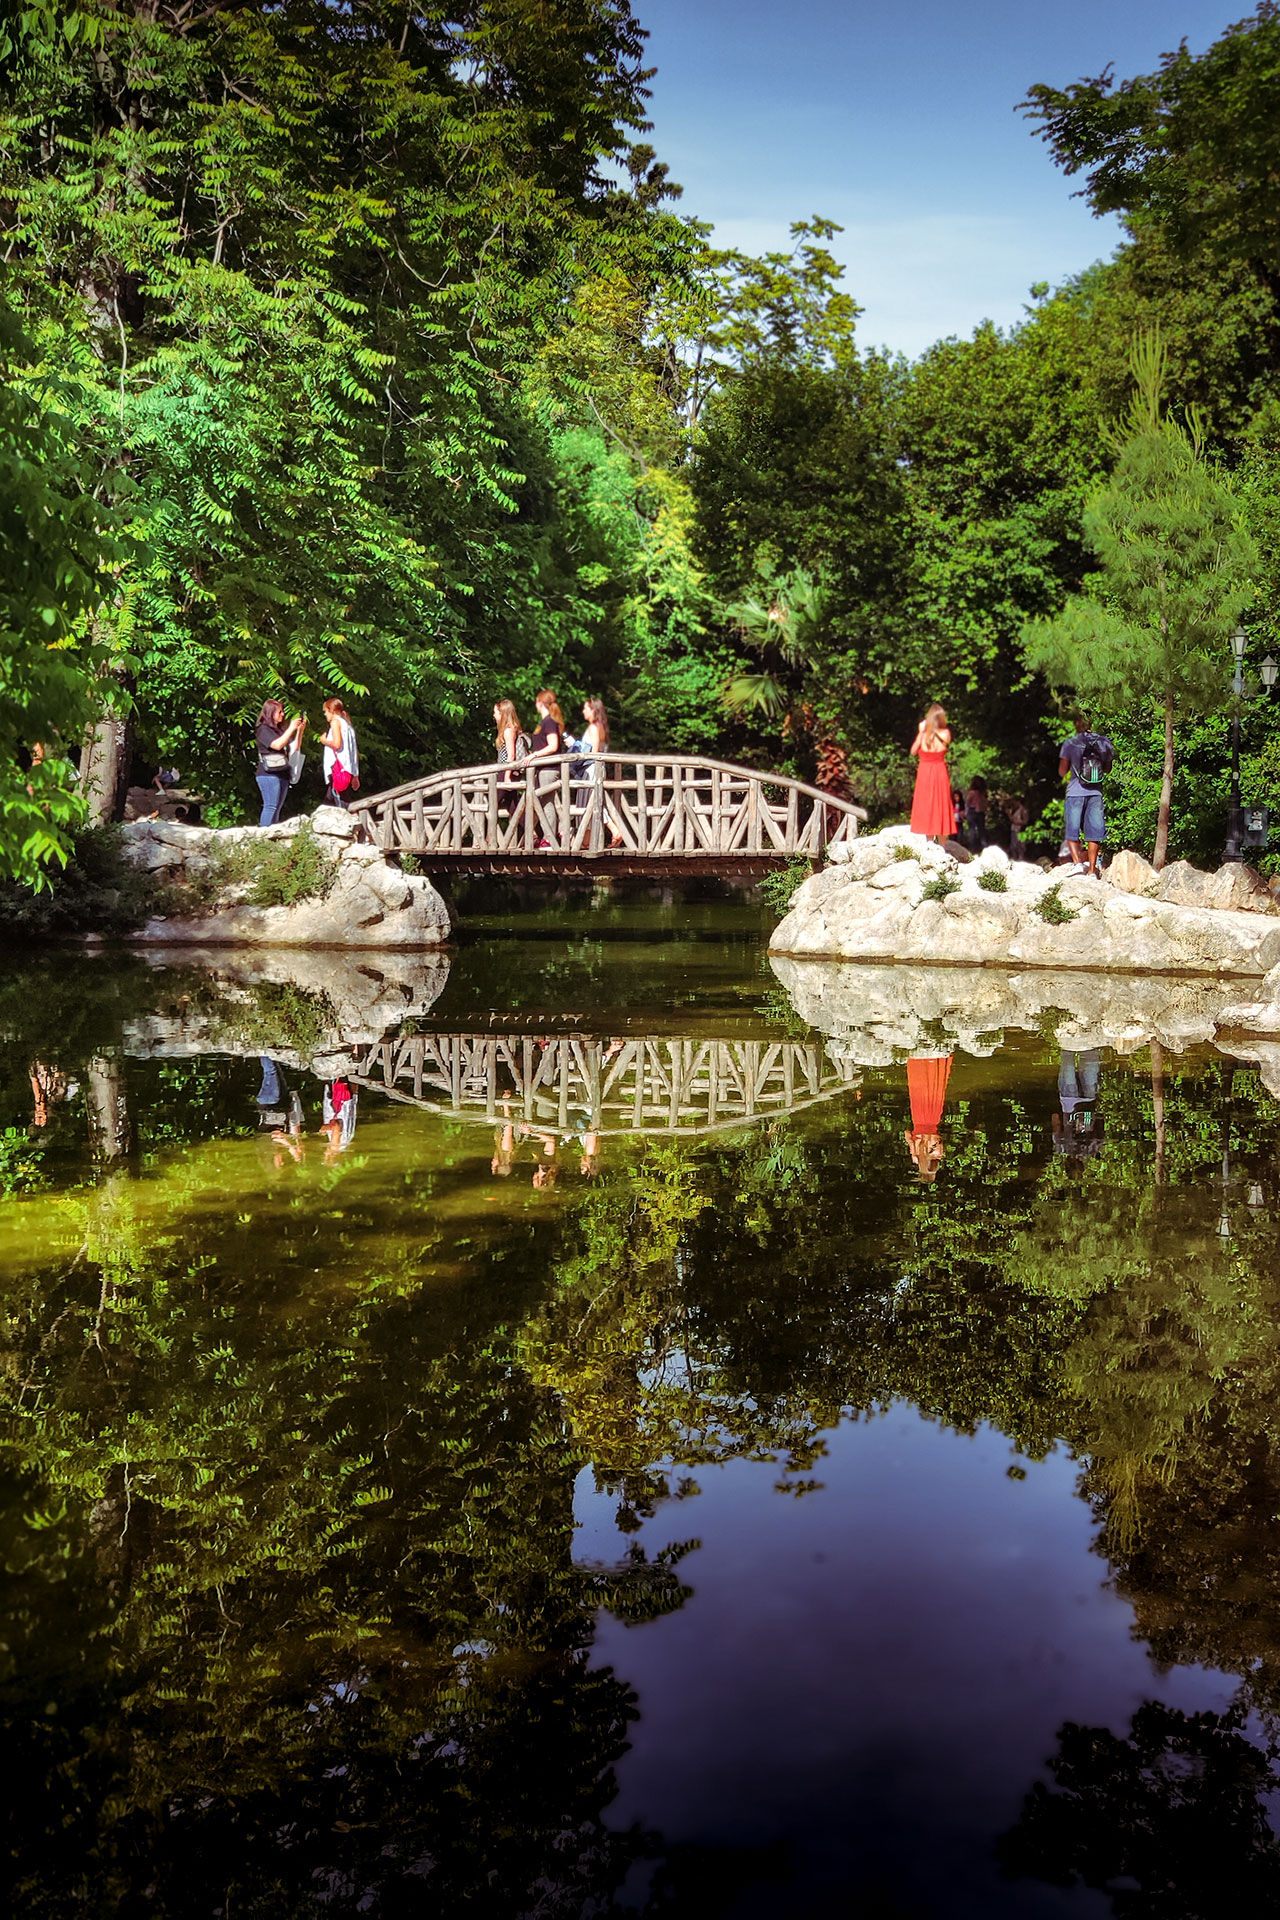 In the National Garden you will find ponds and wooden bridges